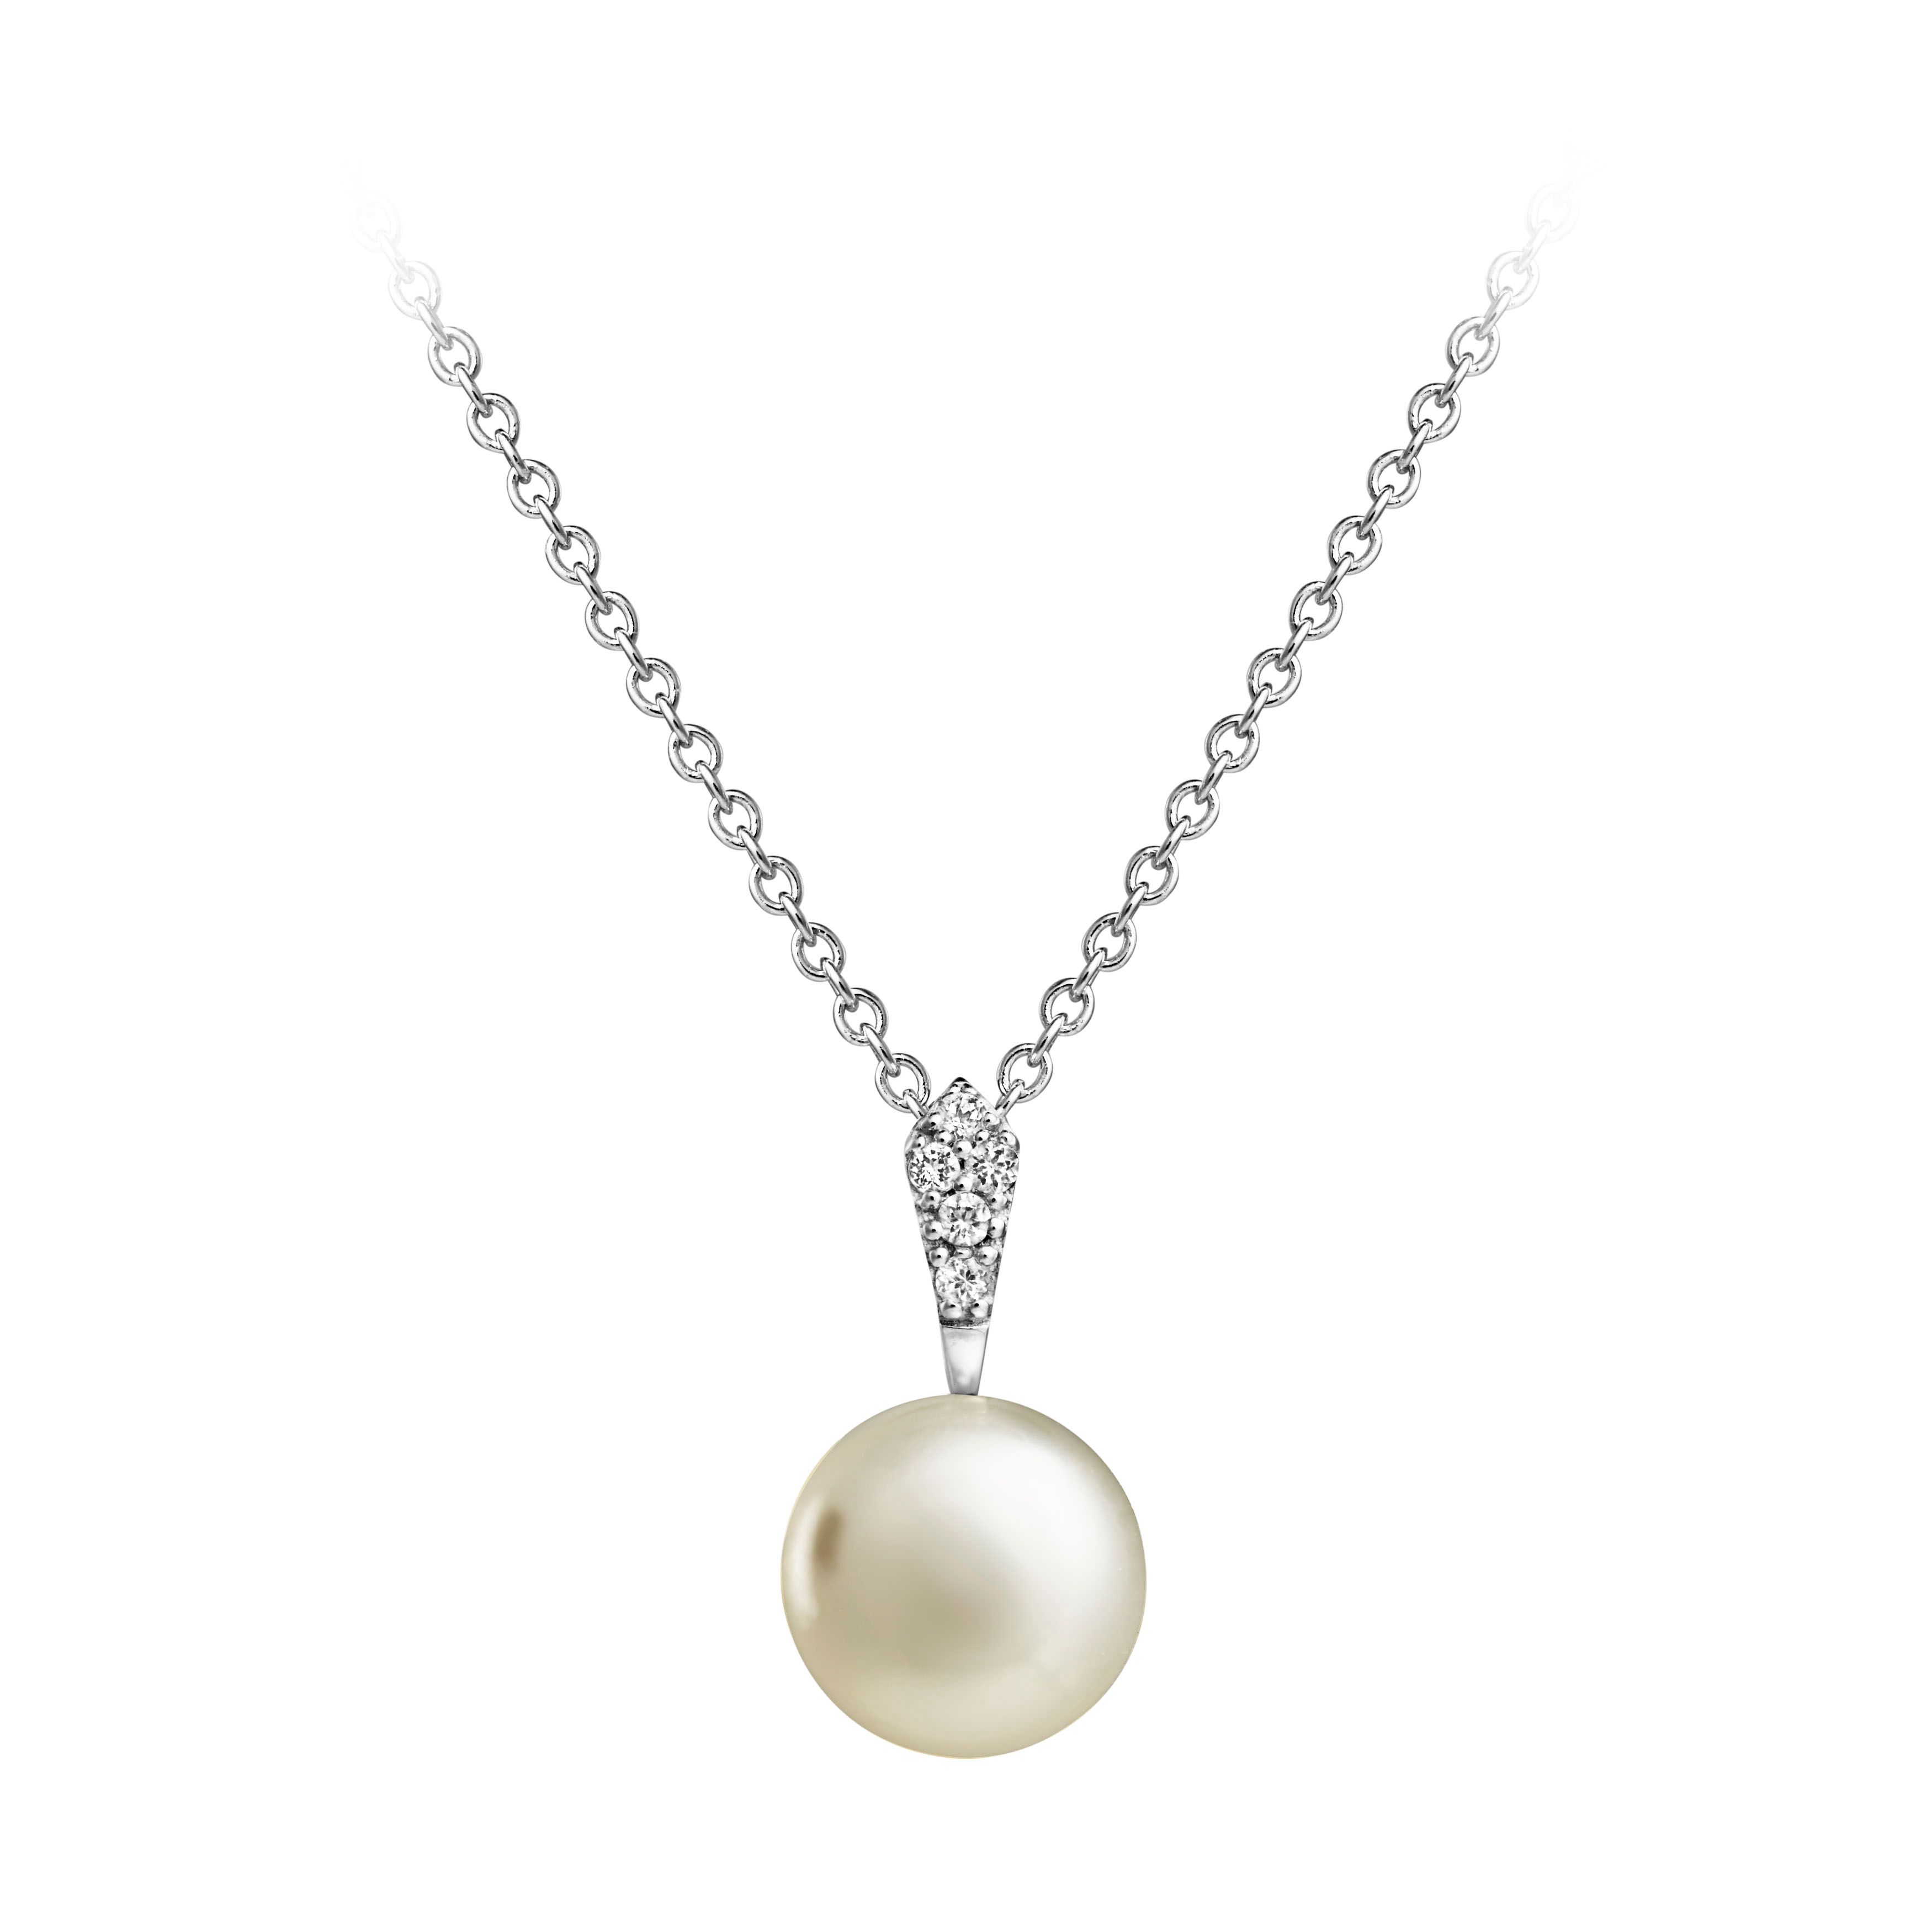 Jersey Pearl Jersey Pearl Freshwater Pearl & White Topaz Pendant, N/A